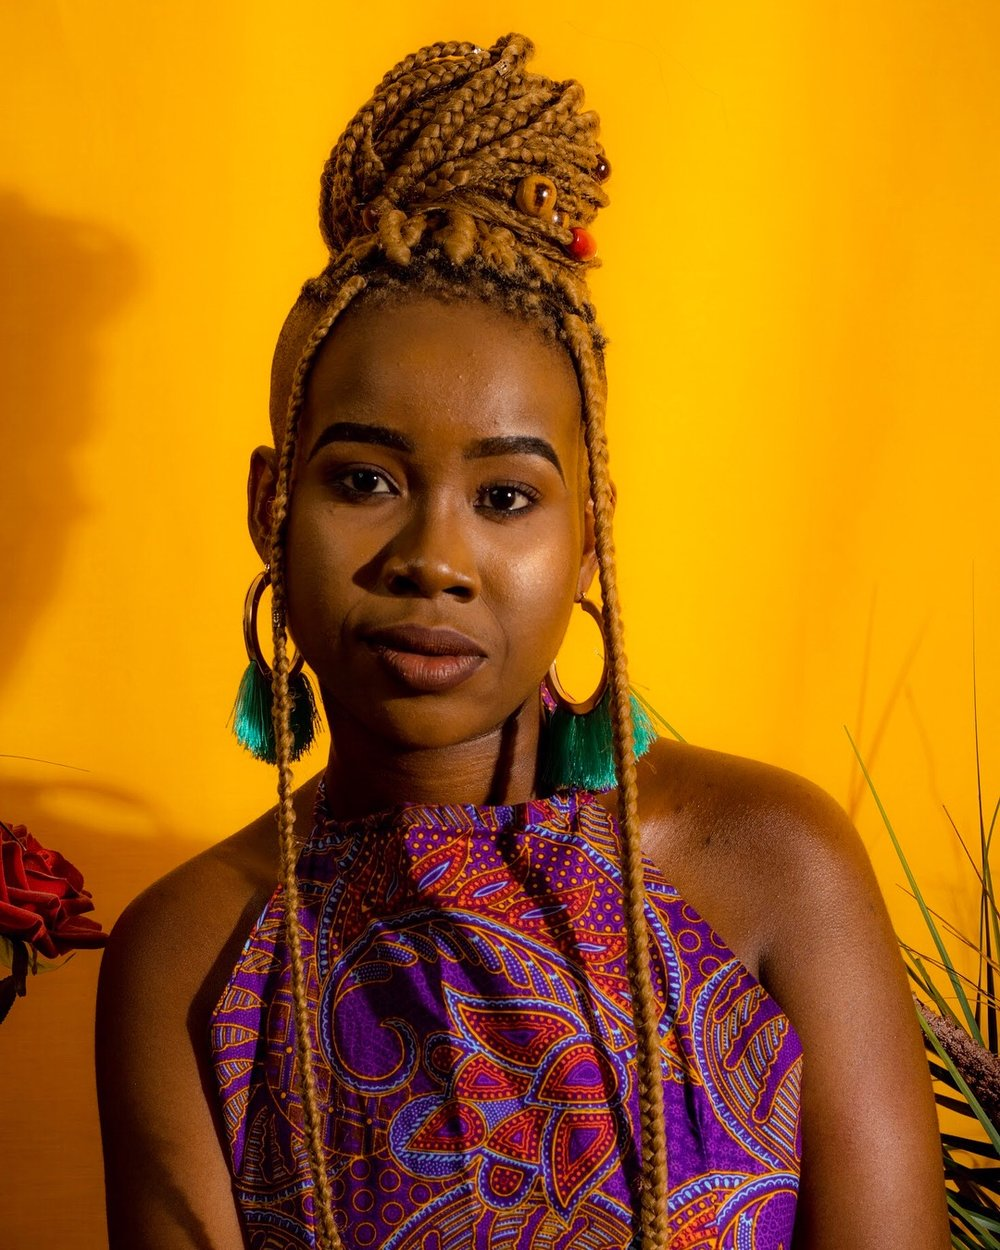 Meet  Albertina (Albie) Thabisani Ncube  : owner/founder of  ATN Photography  and creator of ' Abantu - People of Art '